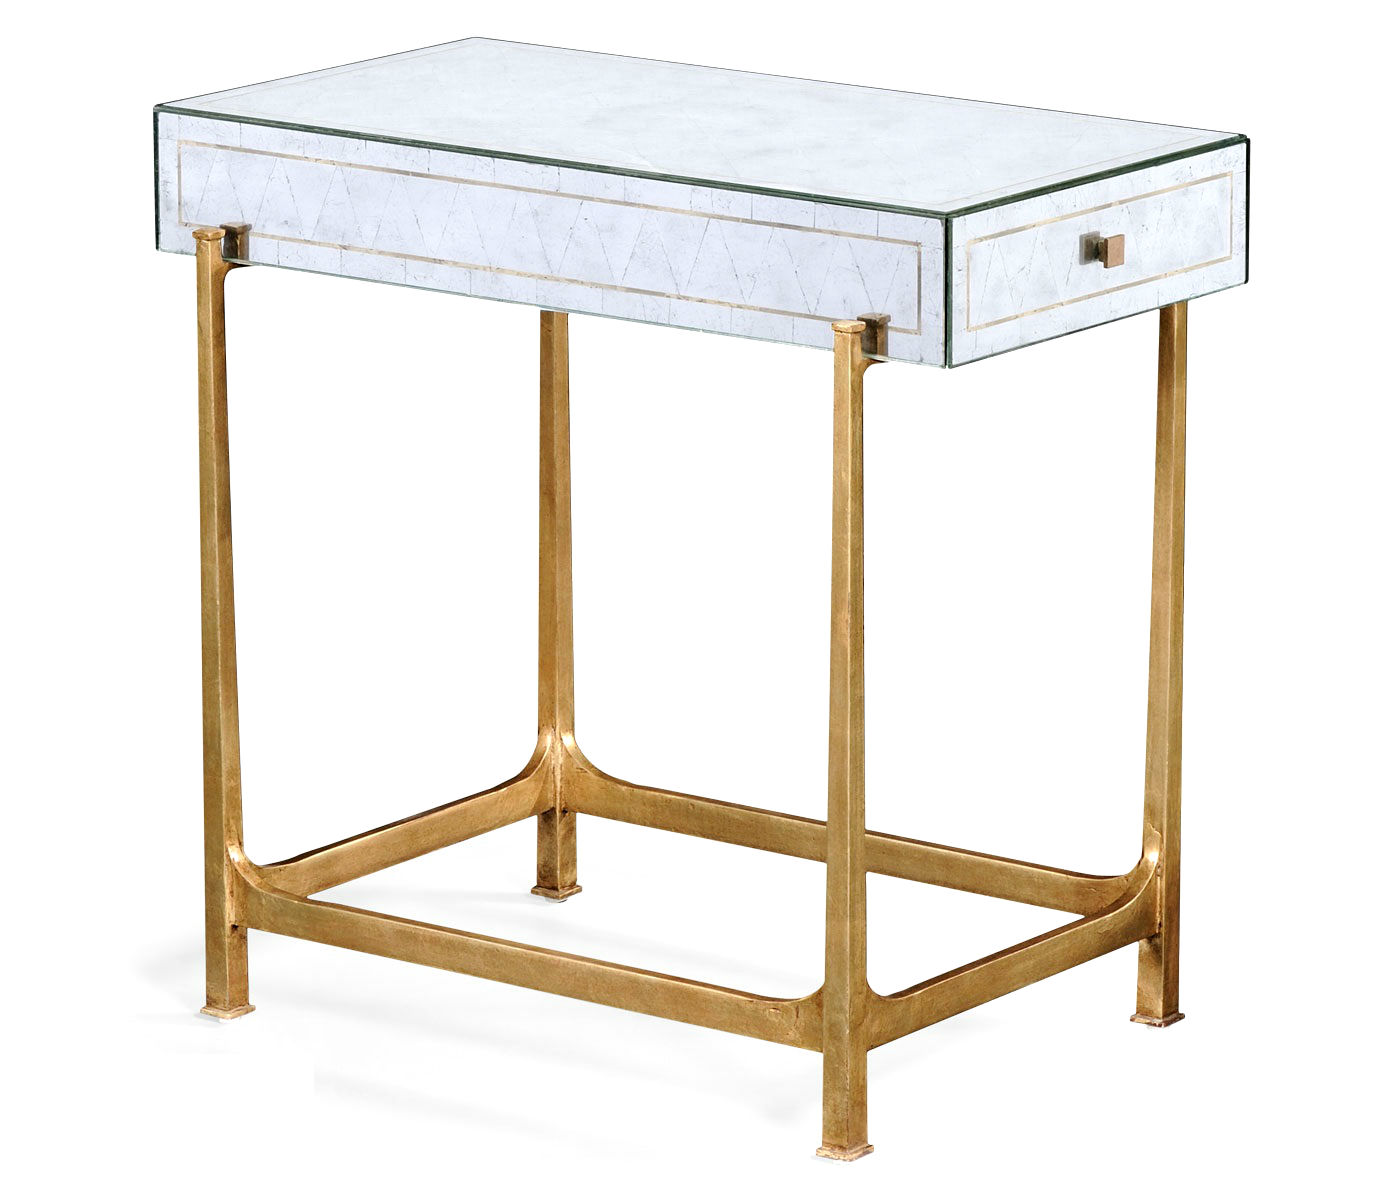 eglomise side table end accent tables gold console tall elegant mirrored distressed gilded partner coffee available hospitality residential nursery seaside themed lighting large